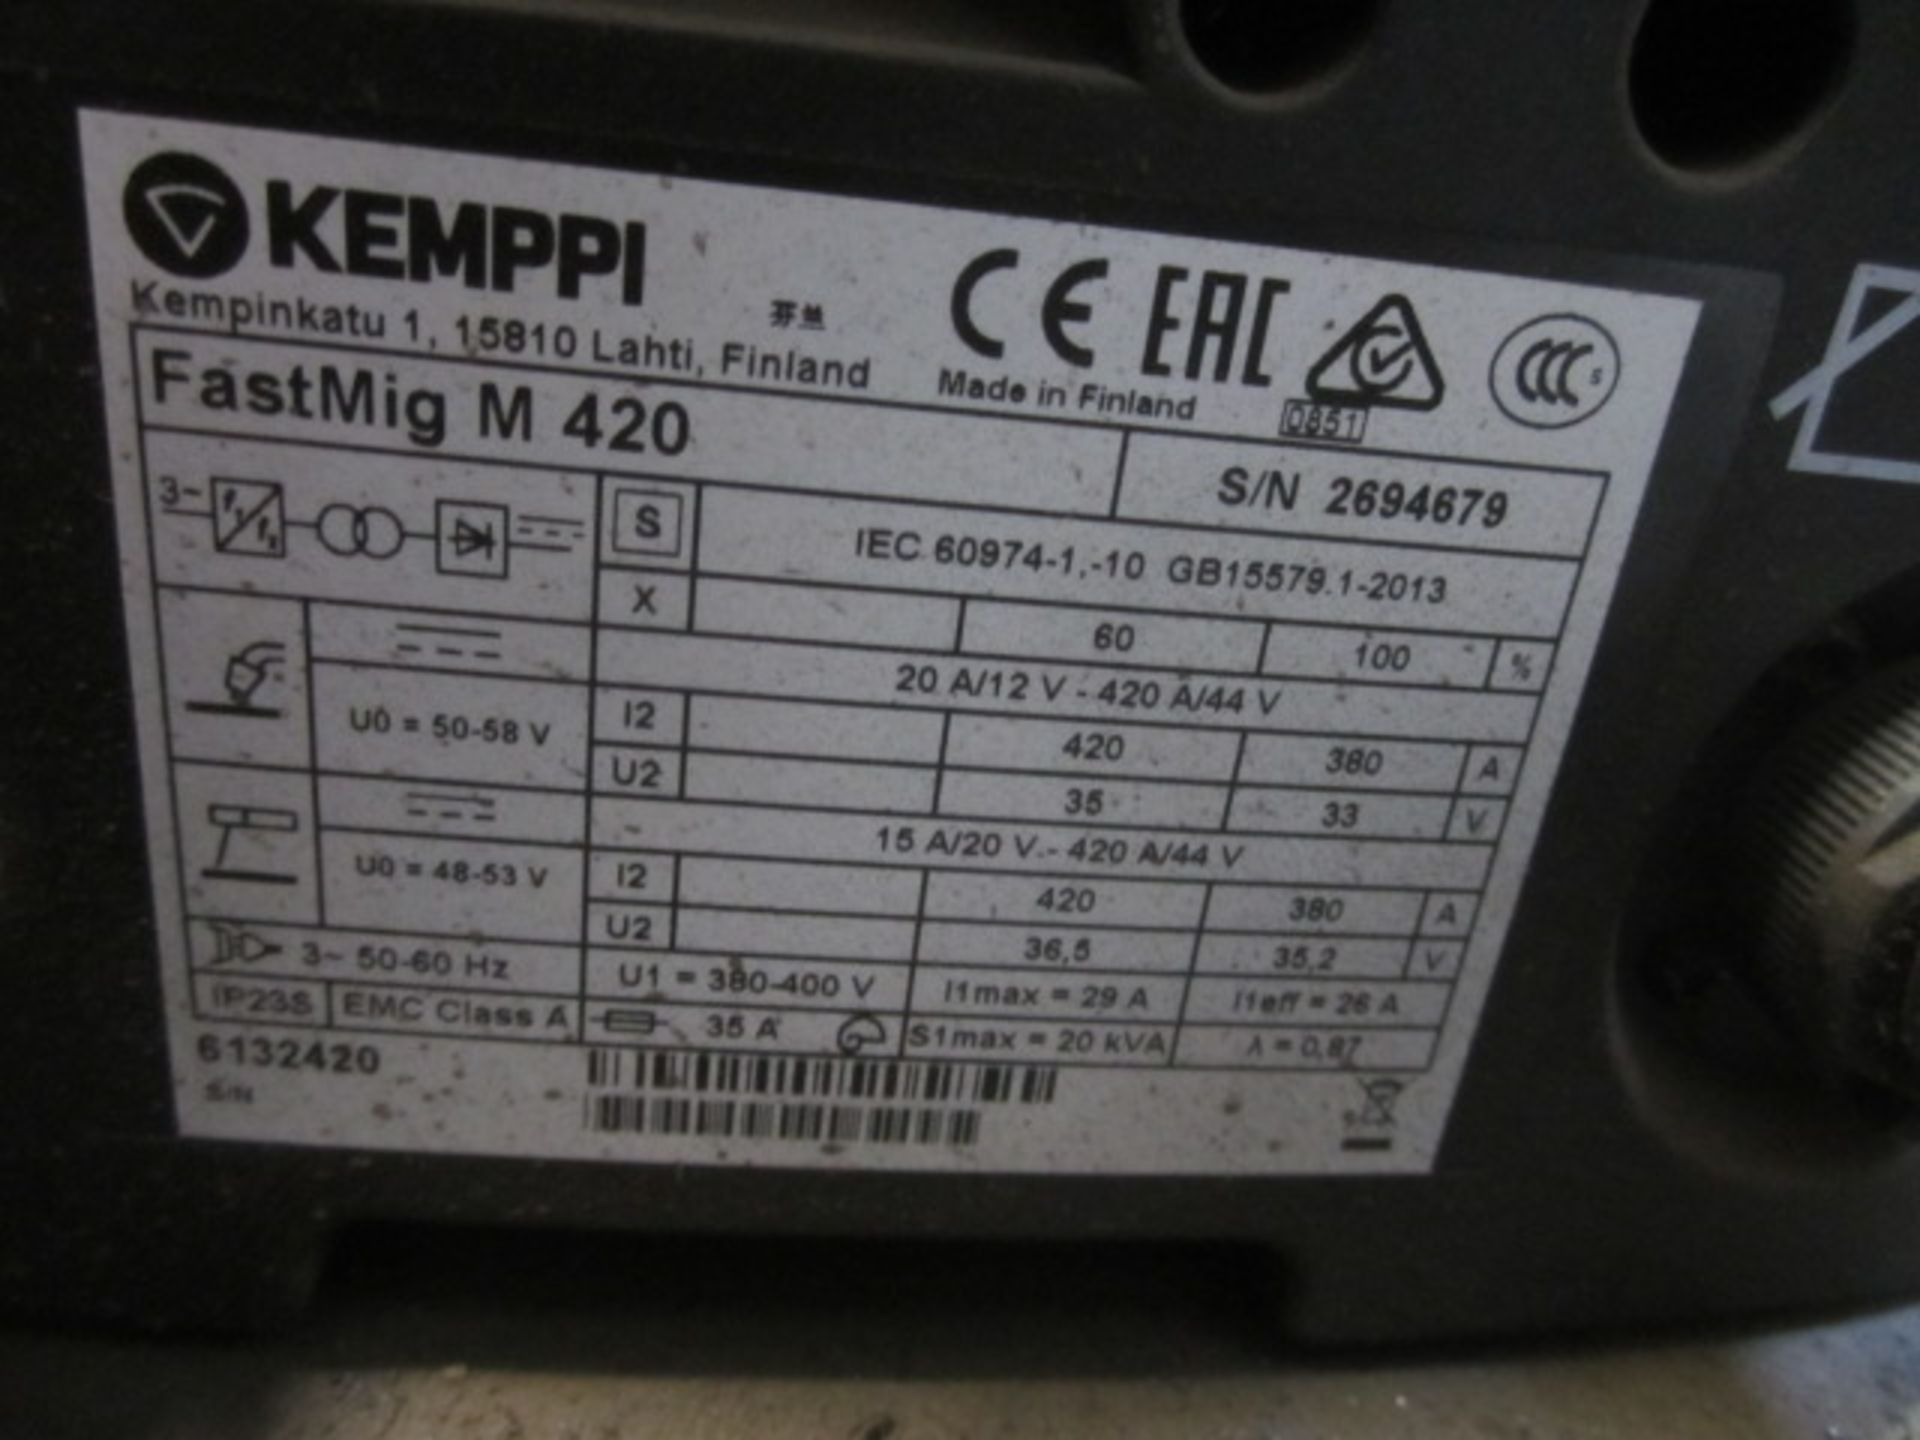 Kemppi Fast Mig M420 mig welder, serial no. 2694679, with Fast Mig MXF65 wire feeder, serial no. - Image 7 of 7